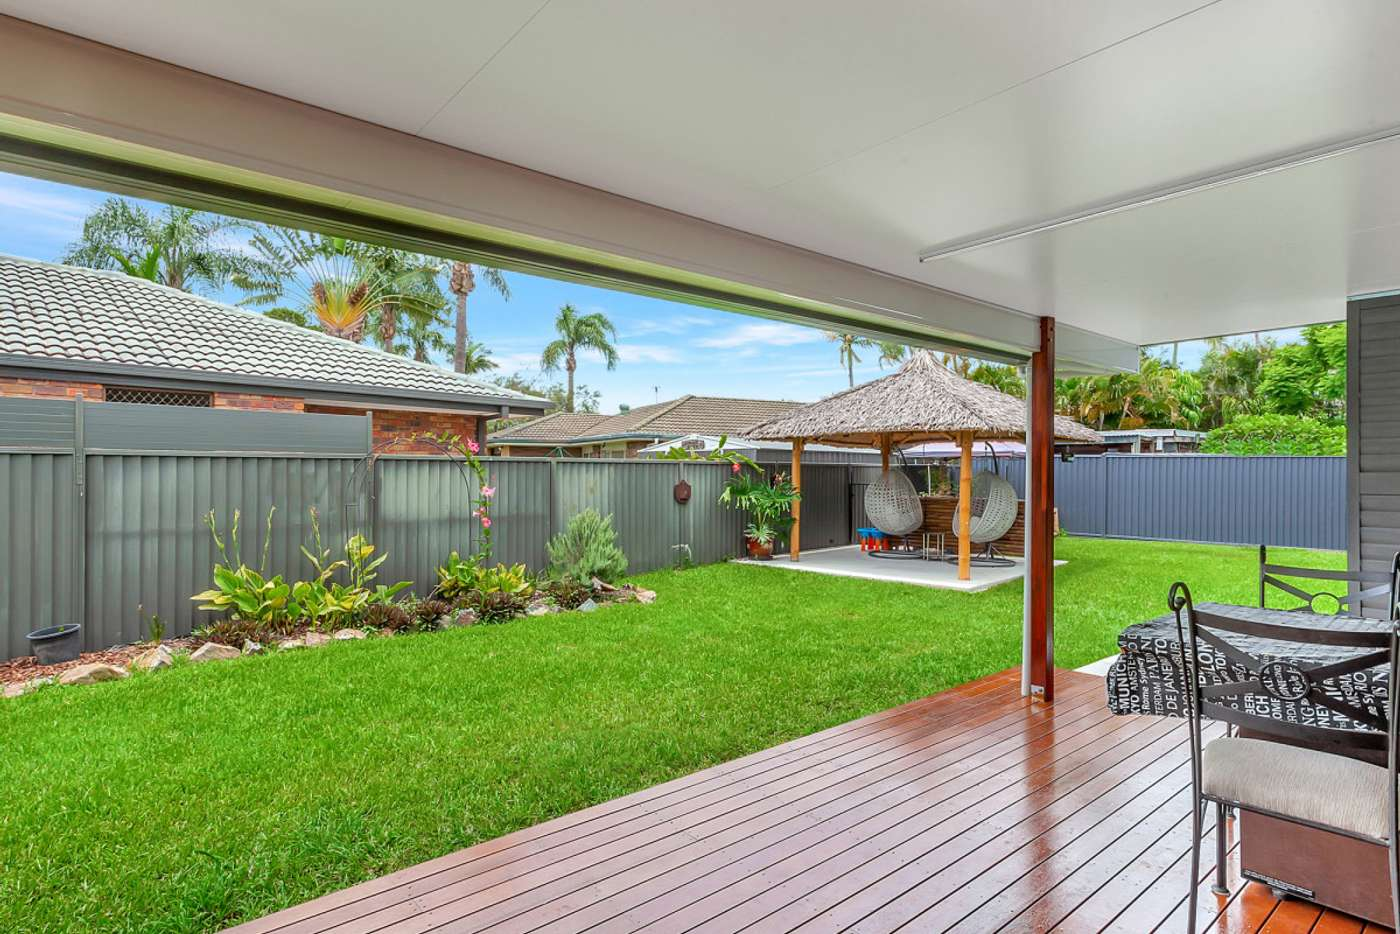 Sixth view of Homely house listing, 42 Razorbill Street, Burleigh Waters QLD 4220